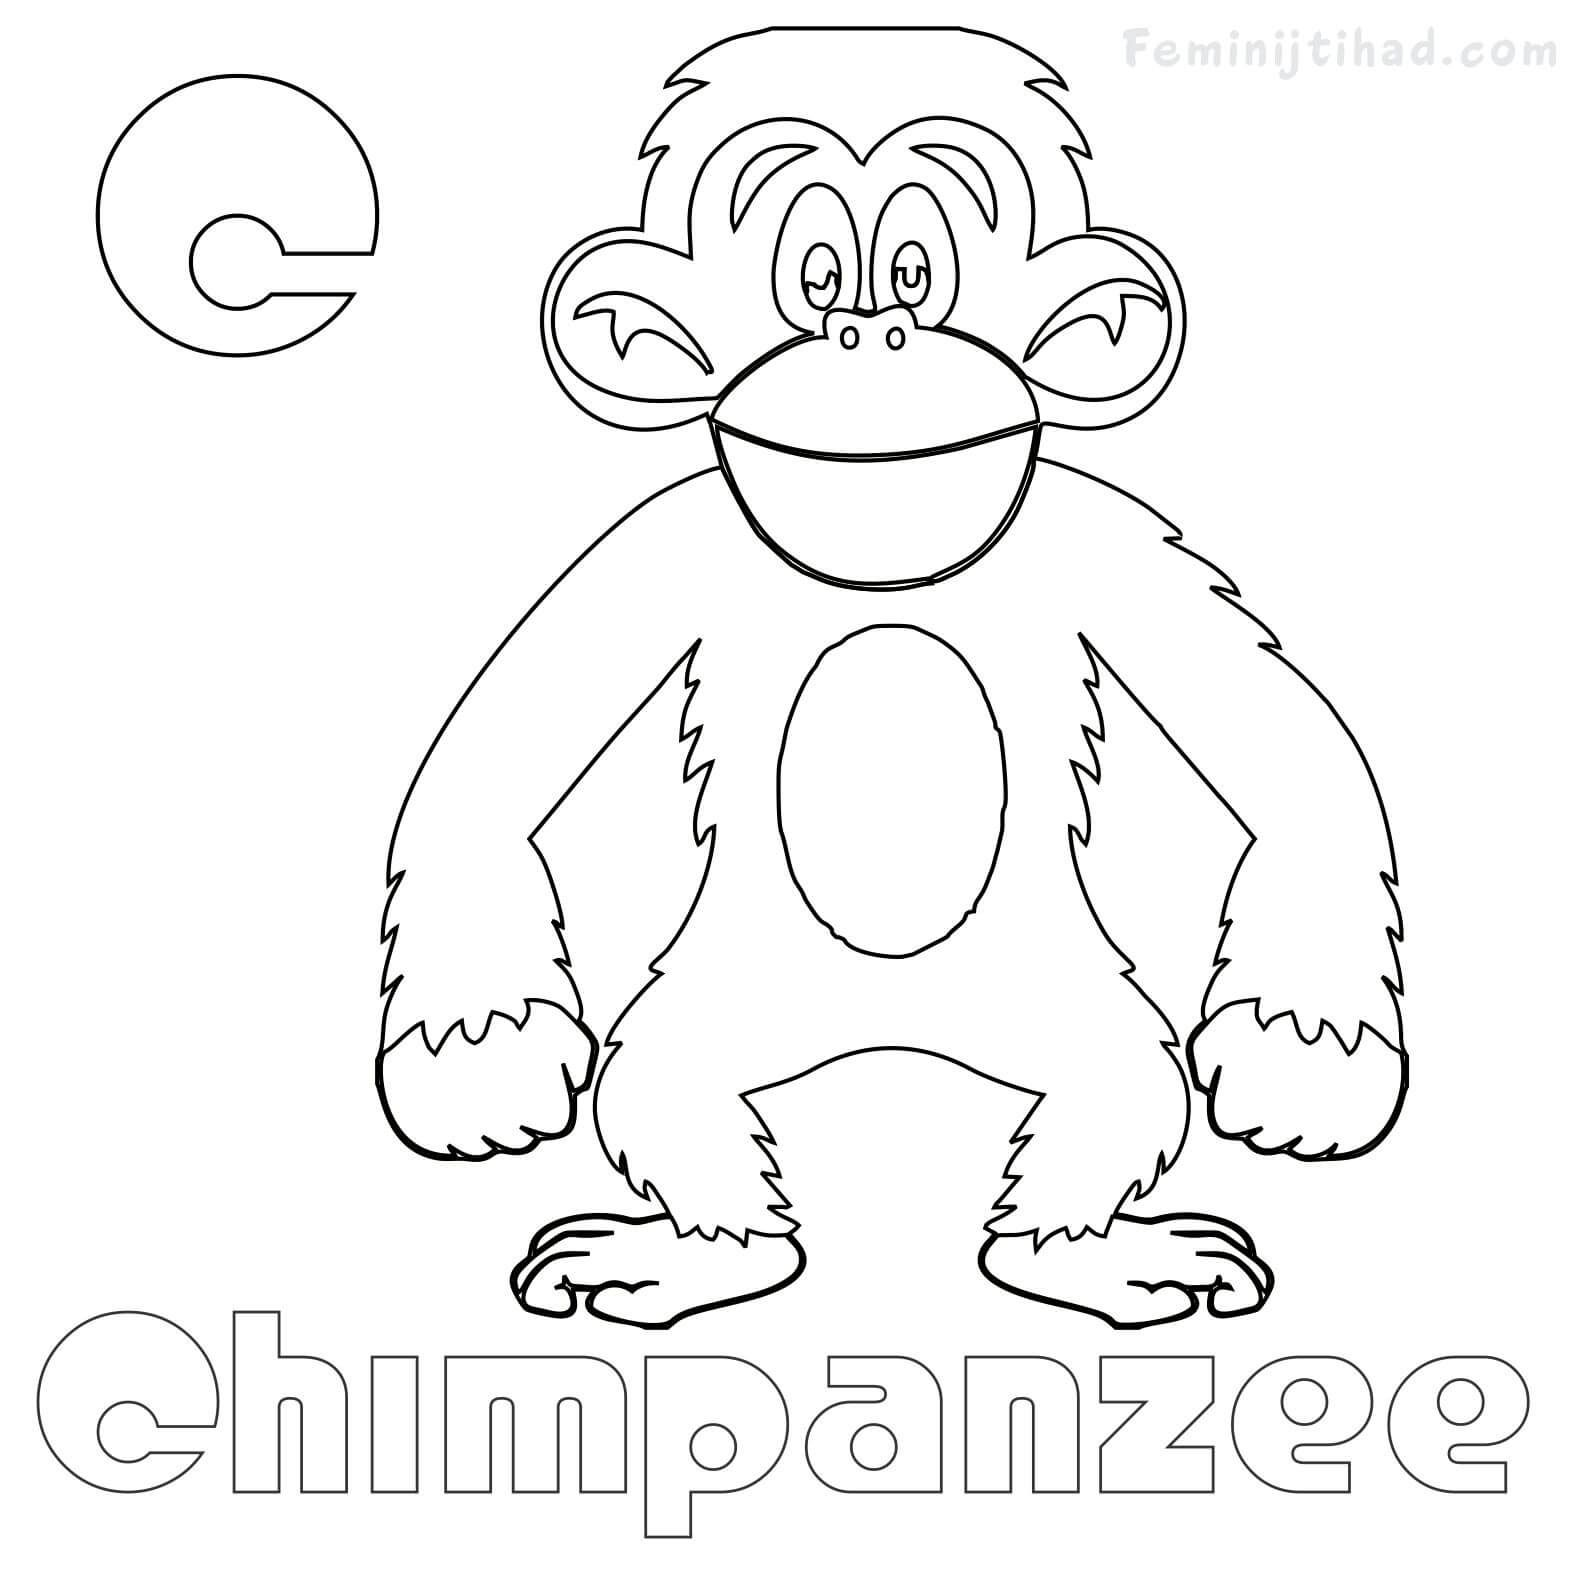 C For Chimpanzee Coloring Pages Animal Coloring Pages